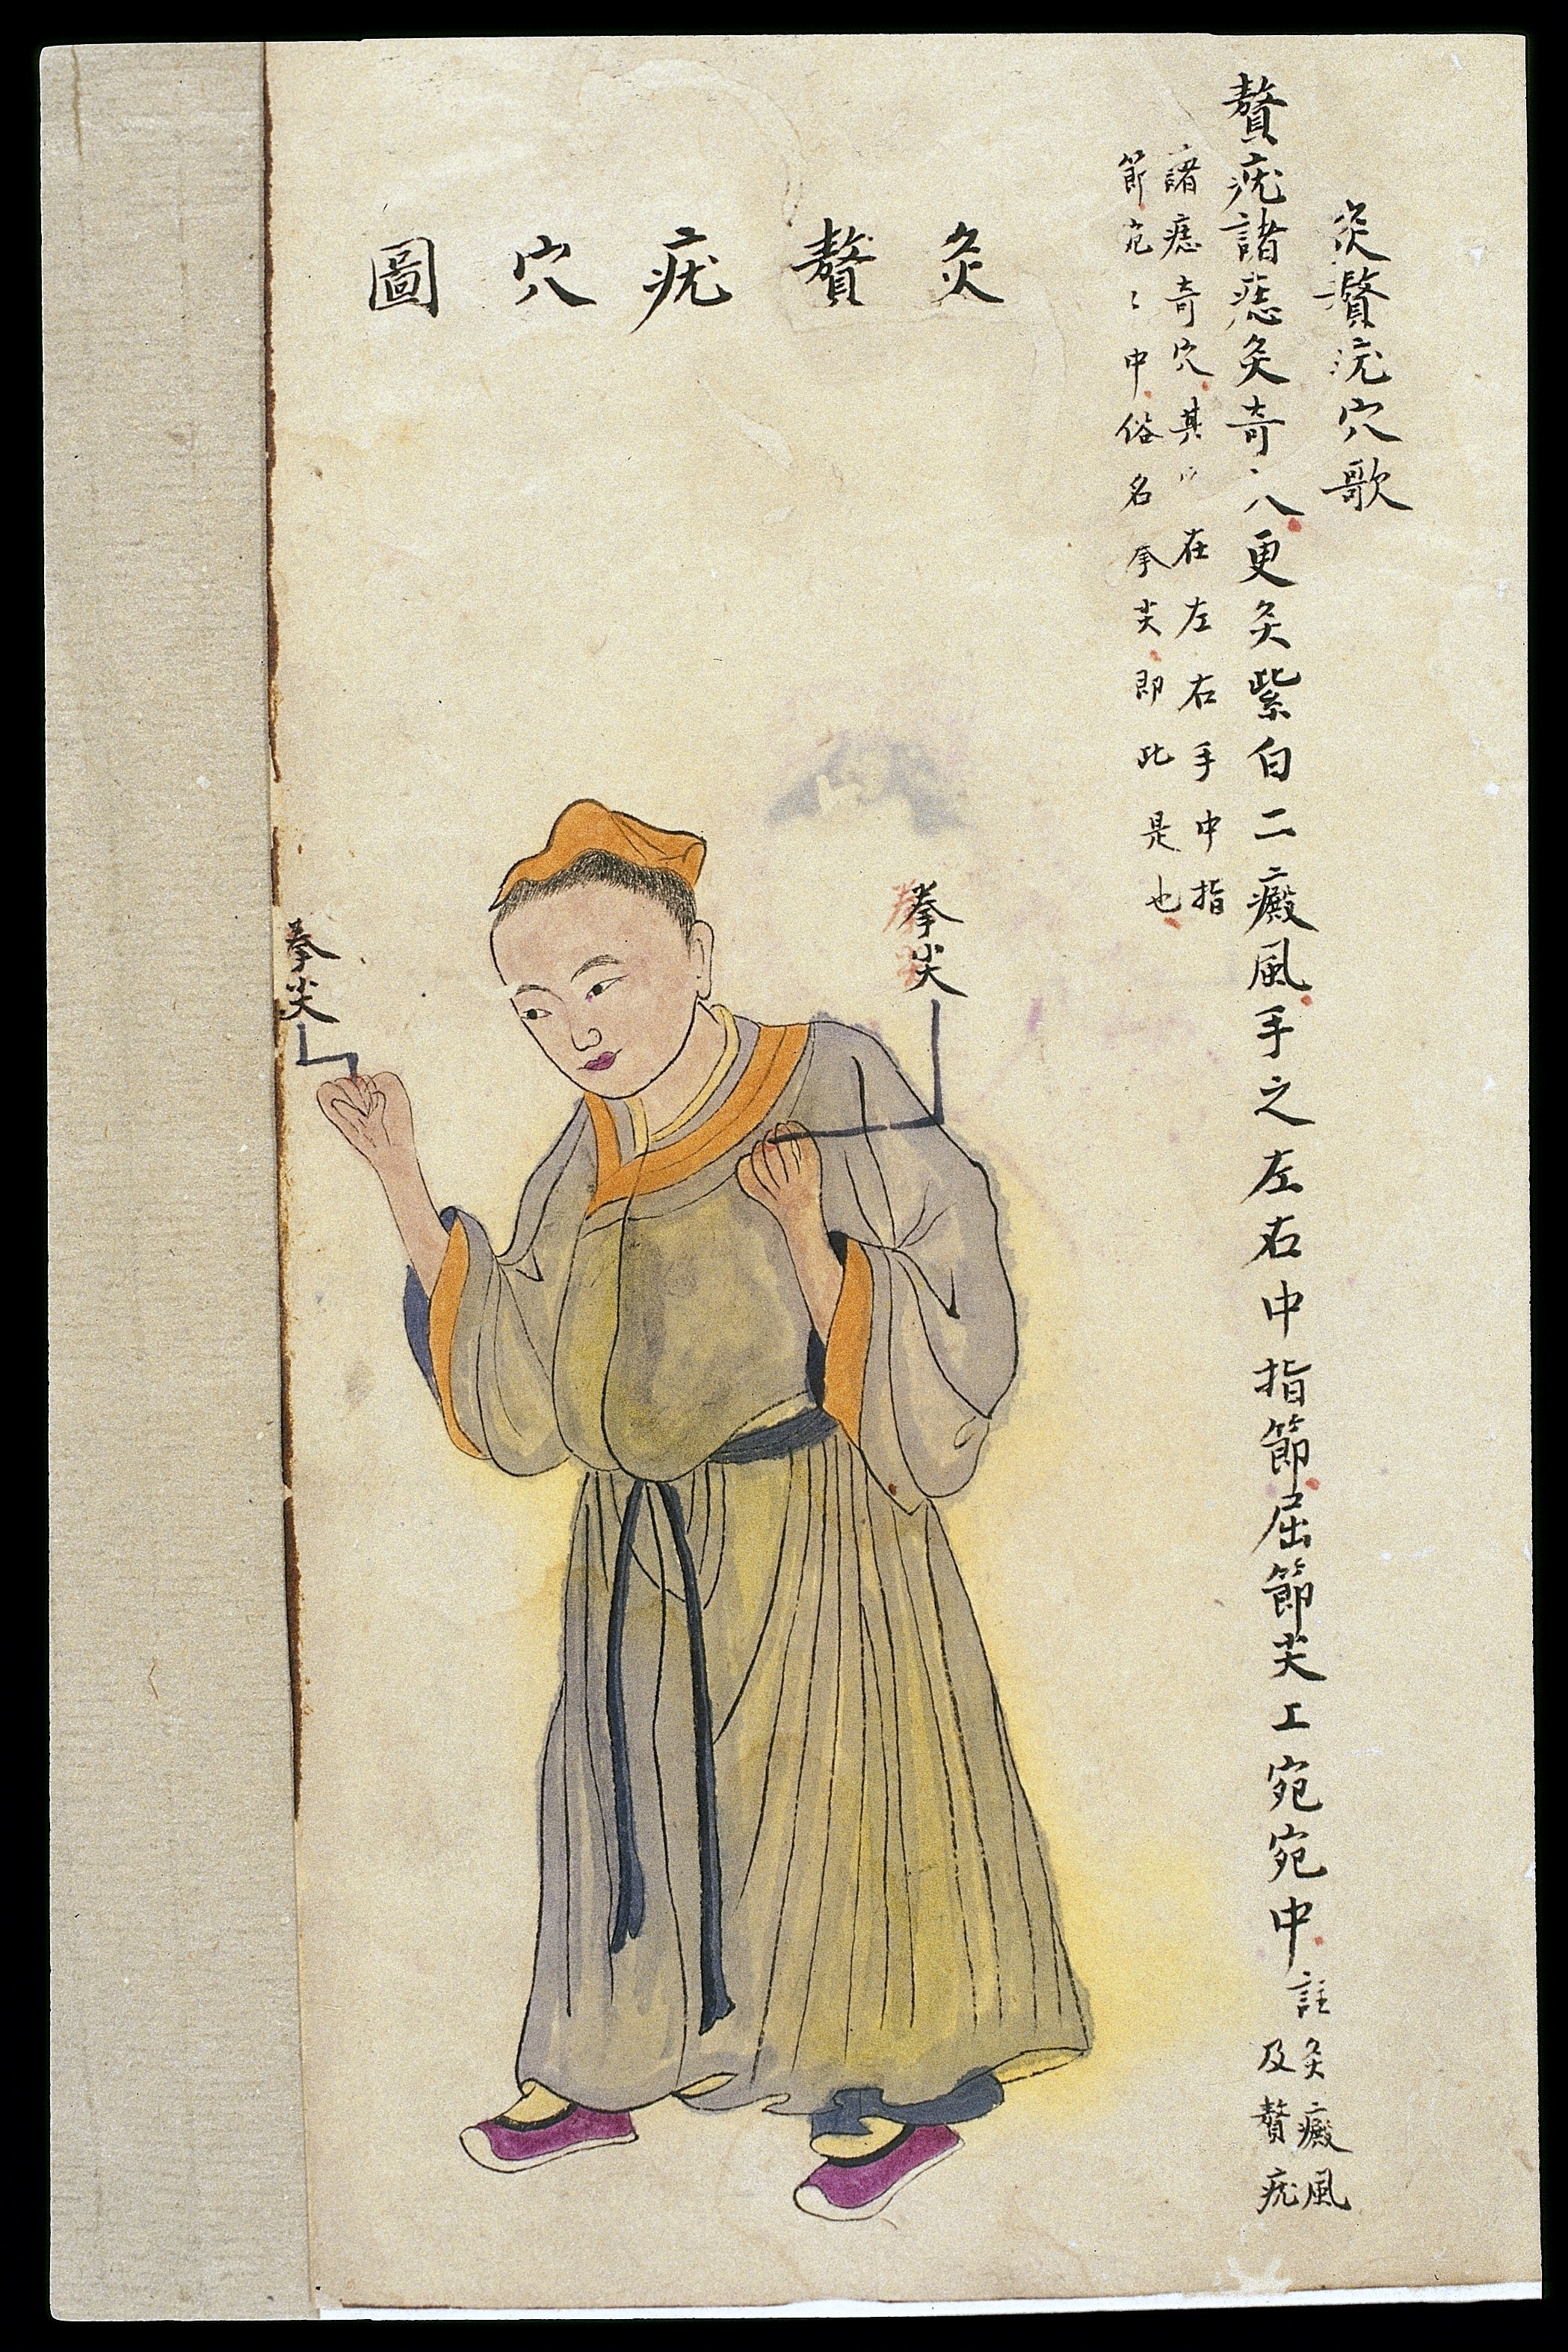 Trigger Points Chart: C19 Chinese MS moxibustion point chart; Wellcome L0039511.jpg ,Chart